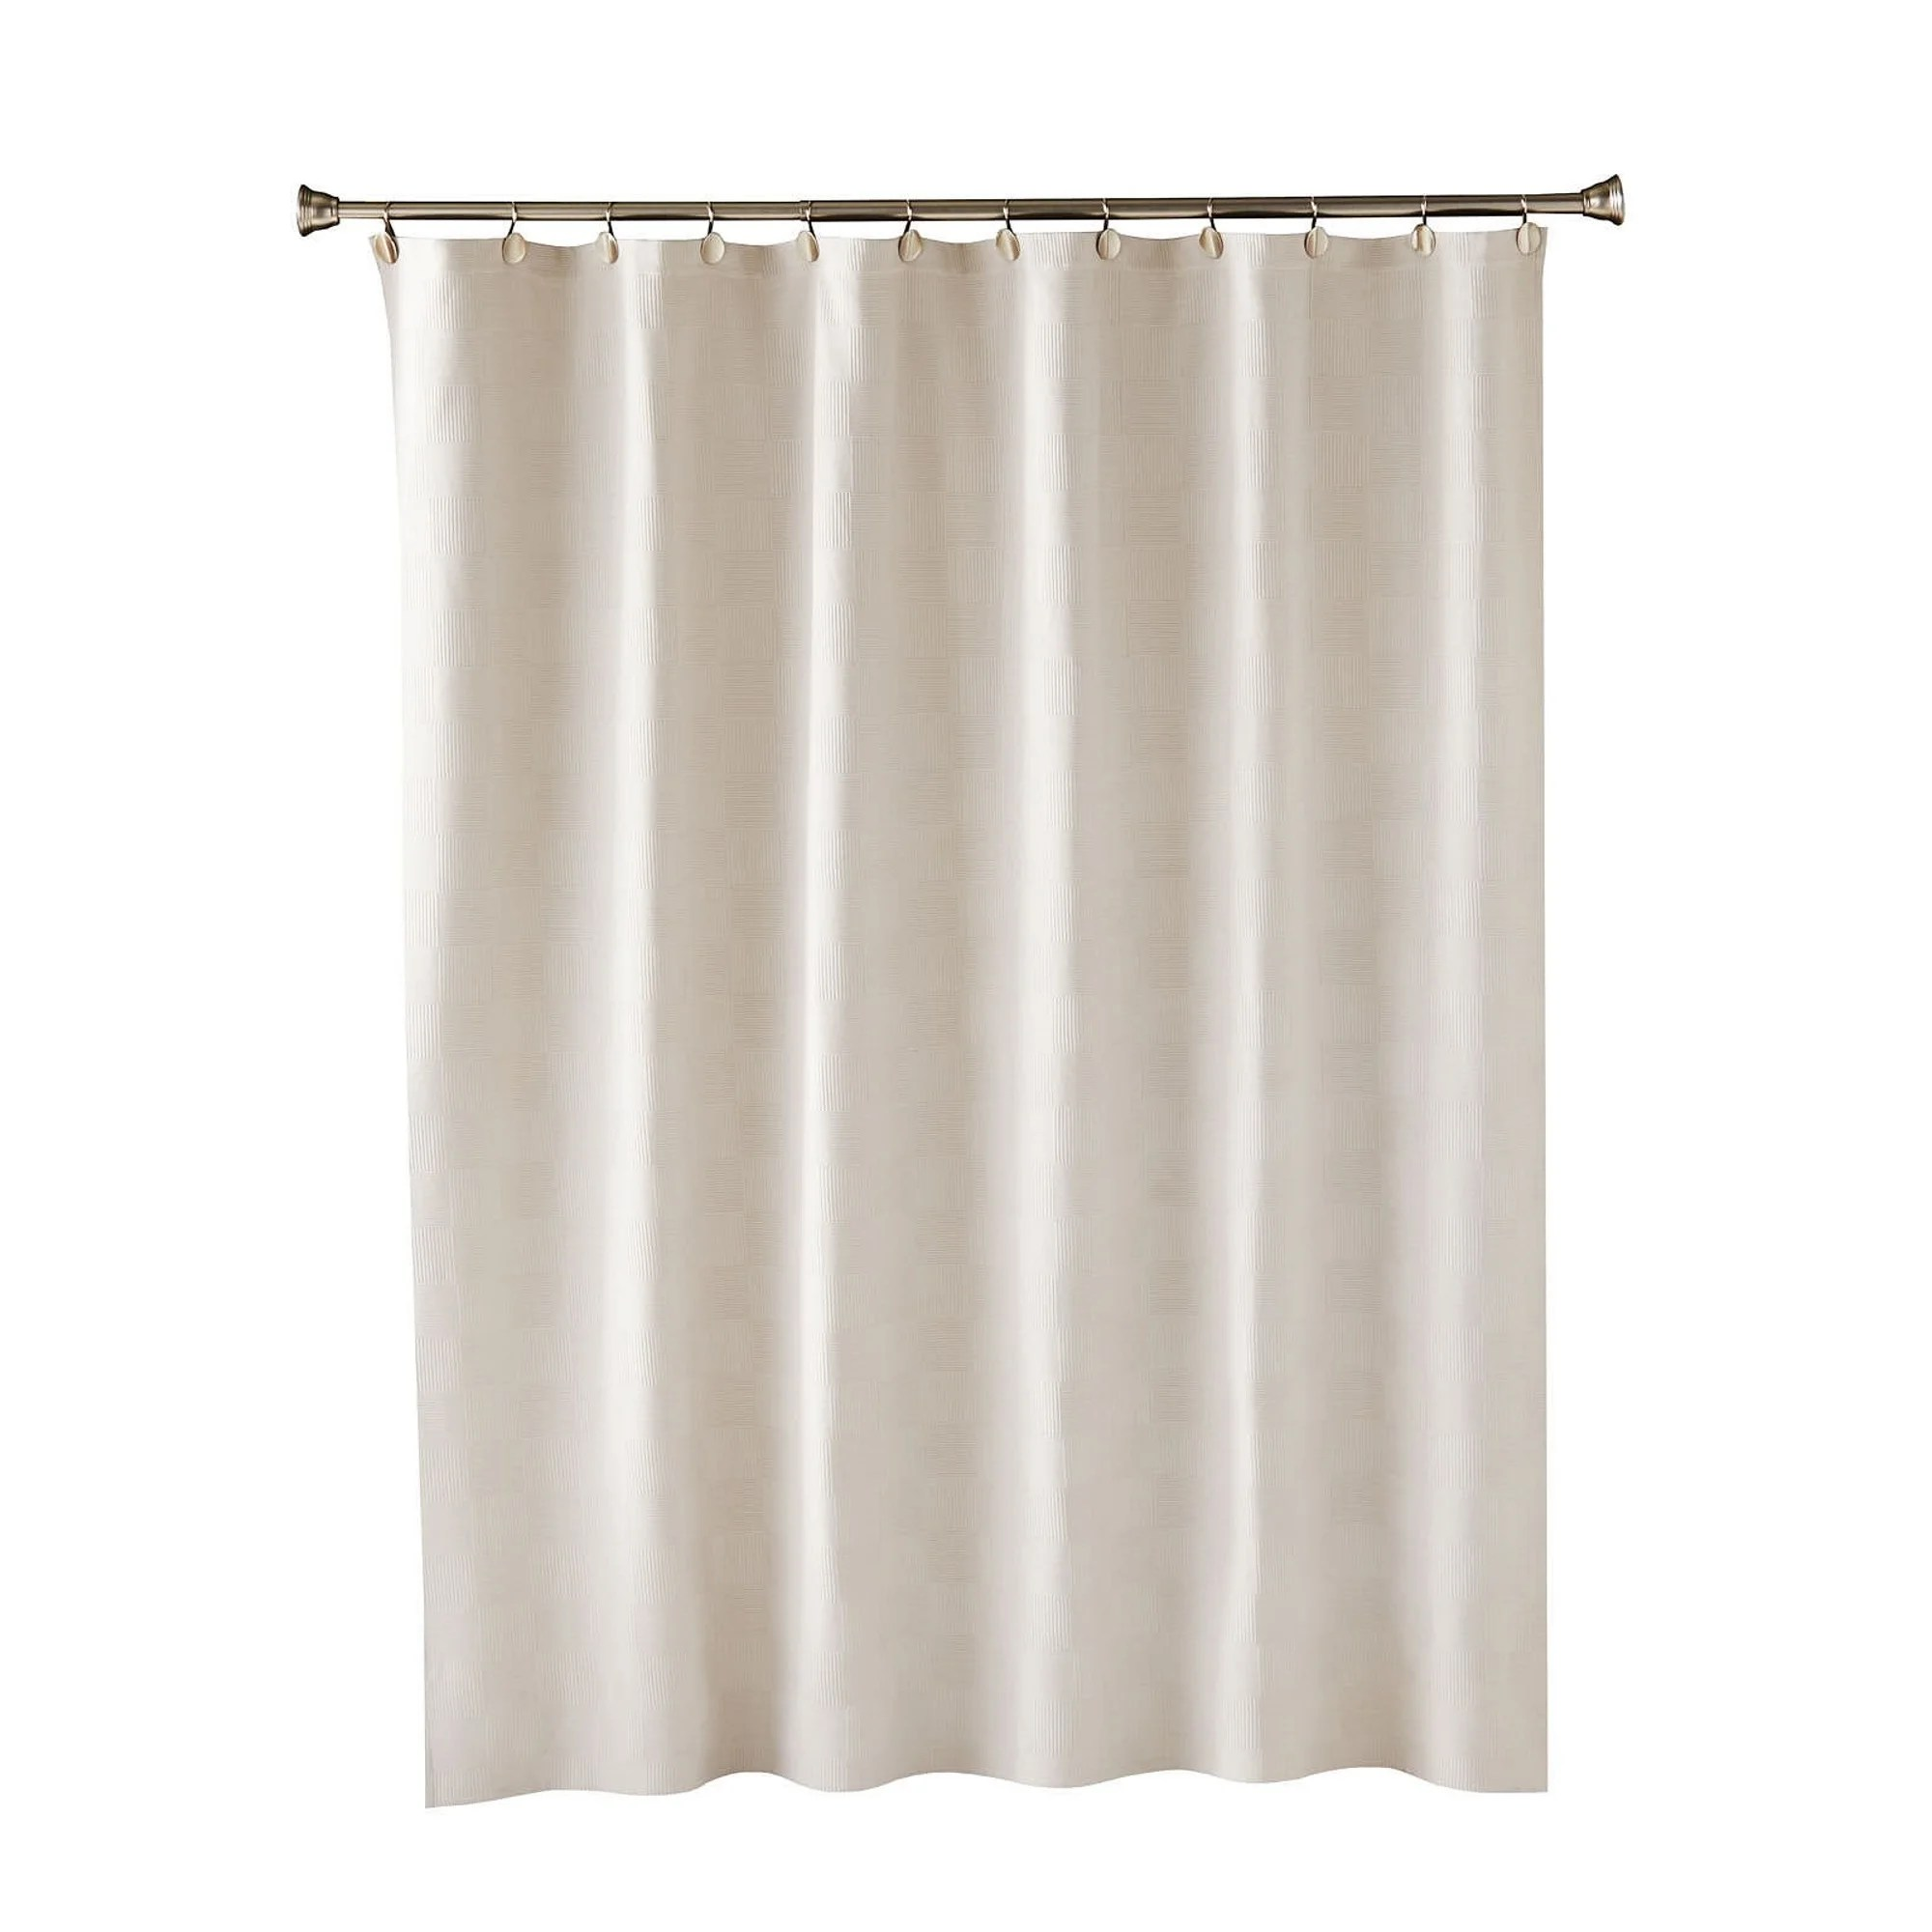 Shower Curtains For Less Skl Home Large Basketweave Shower Curtain In Taupe